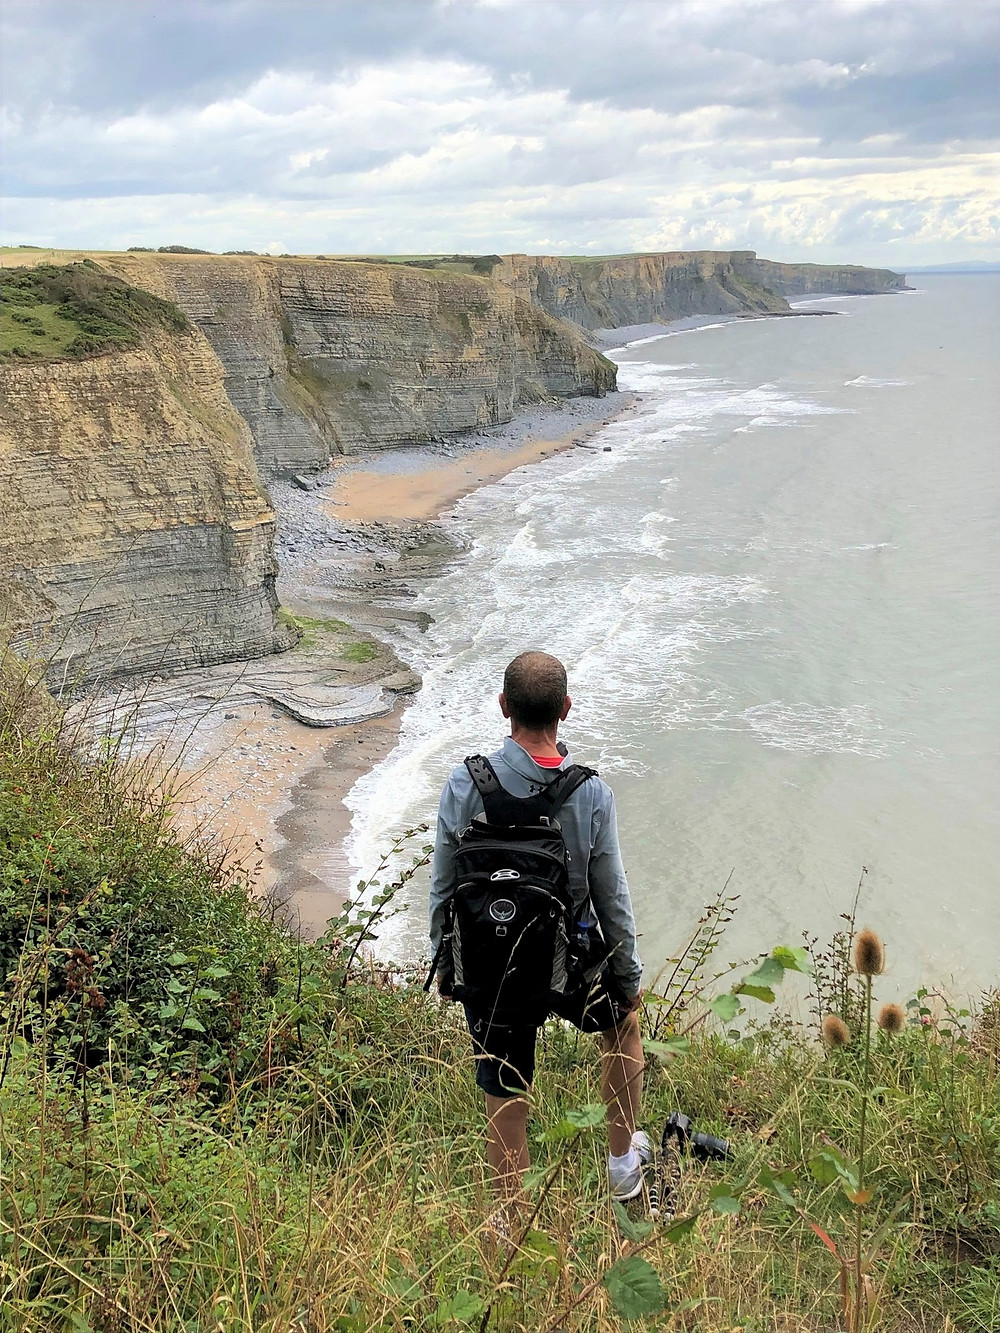 Overlooking the coastline referred to as 'Whitmore Stairs' where the cliffs are over 200 ft high along the Glamorgan Heritage Coastal Trail